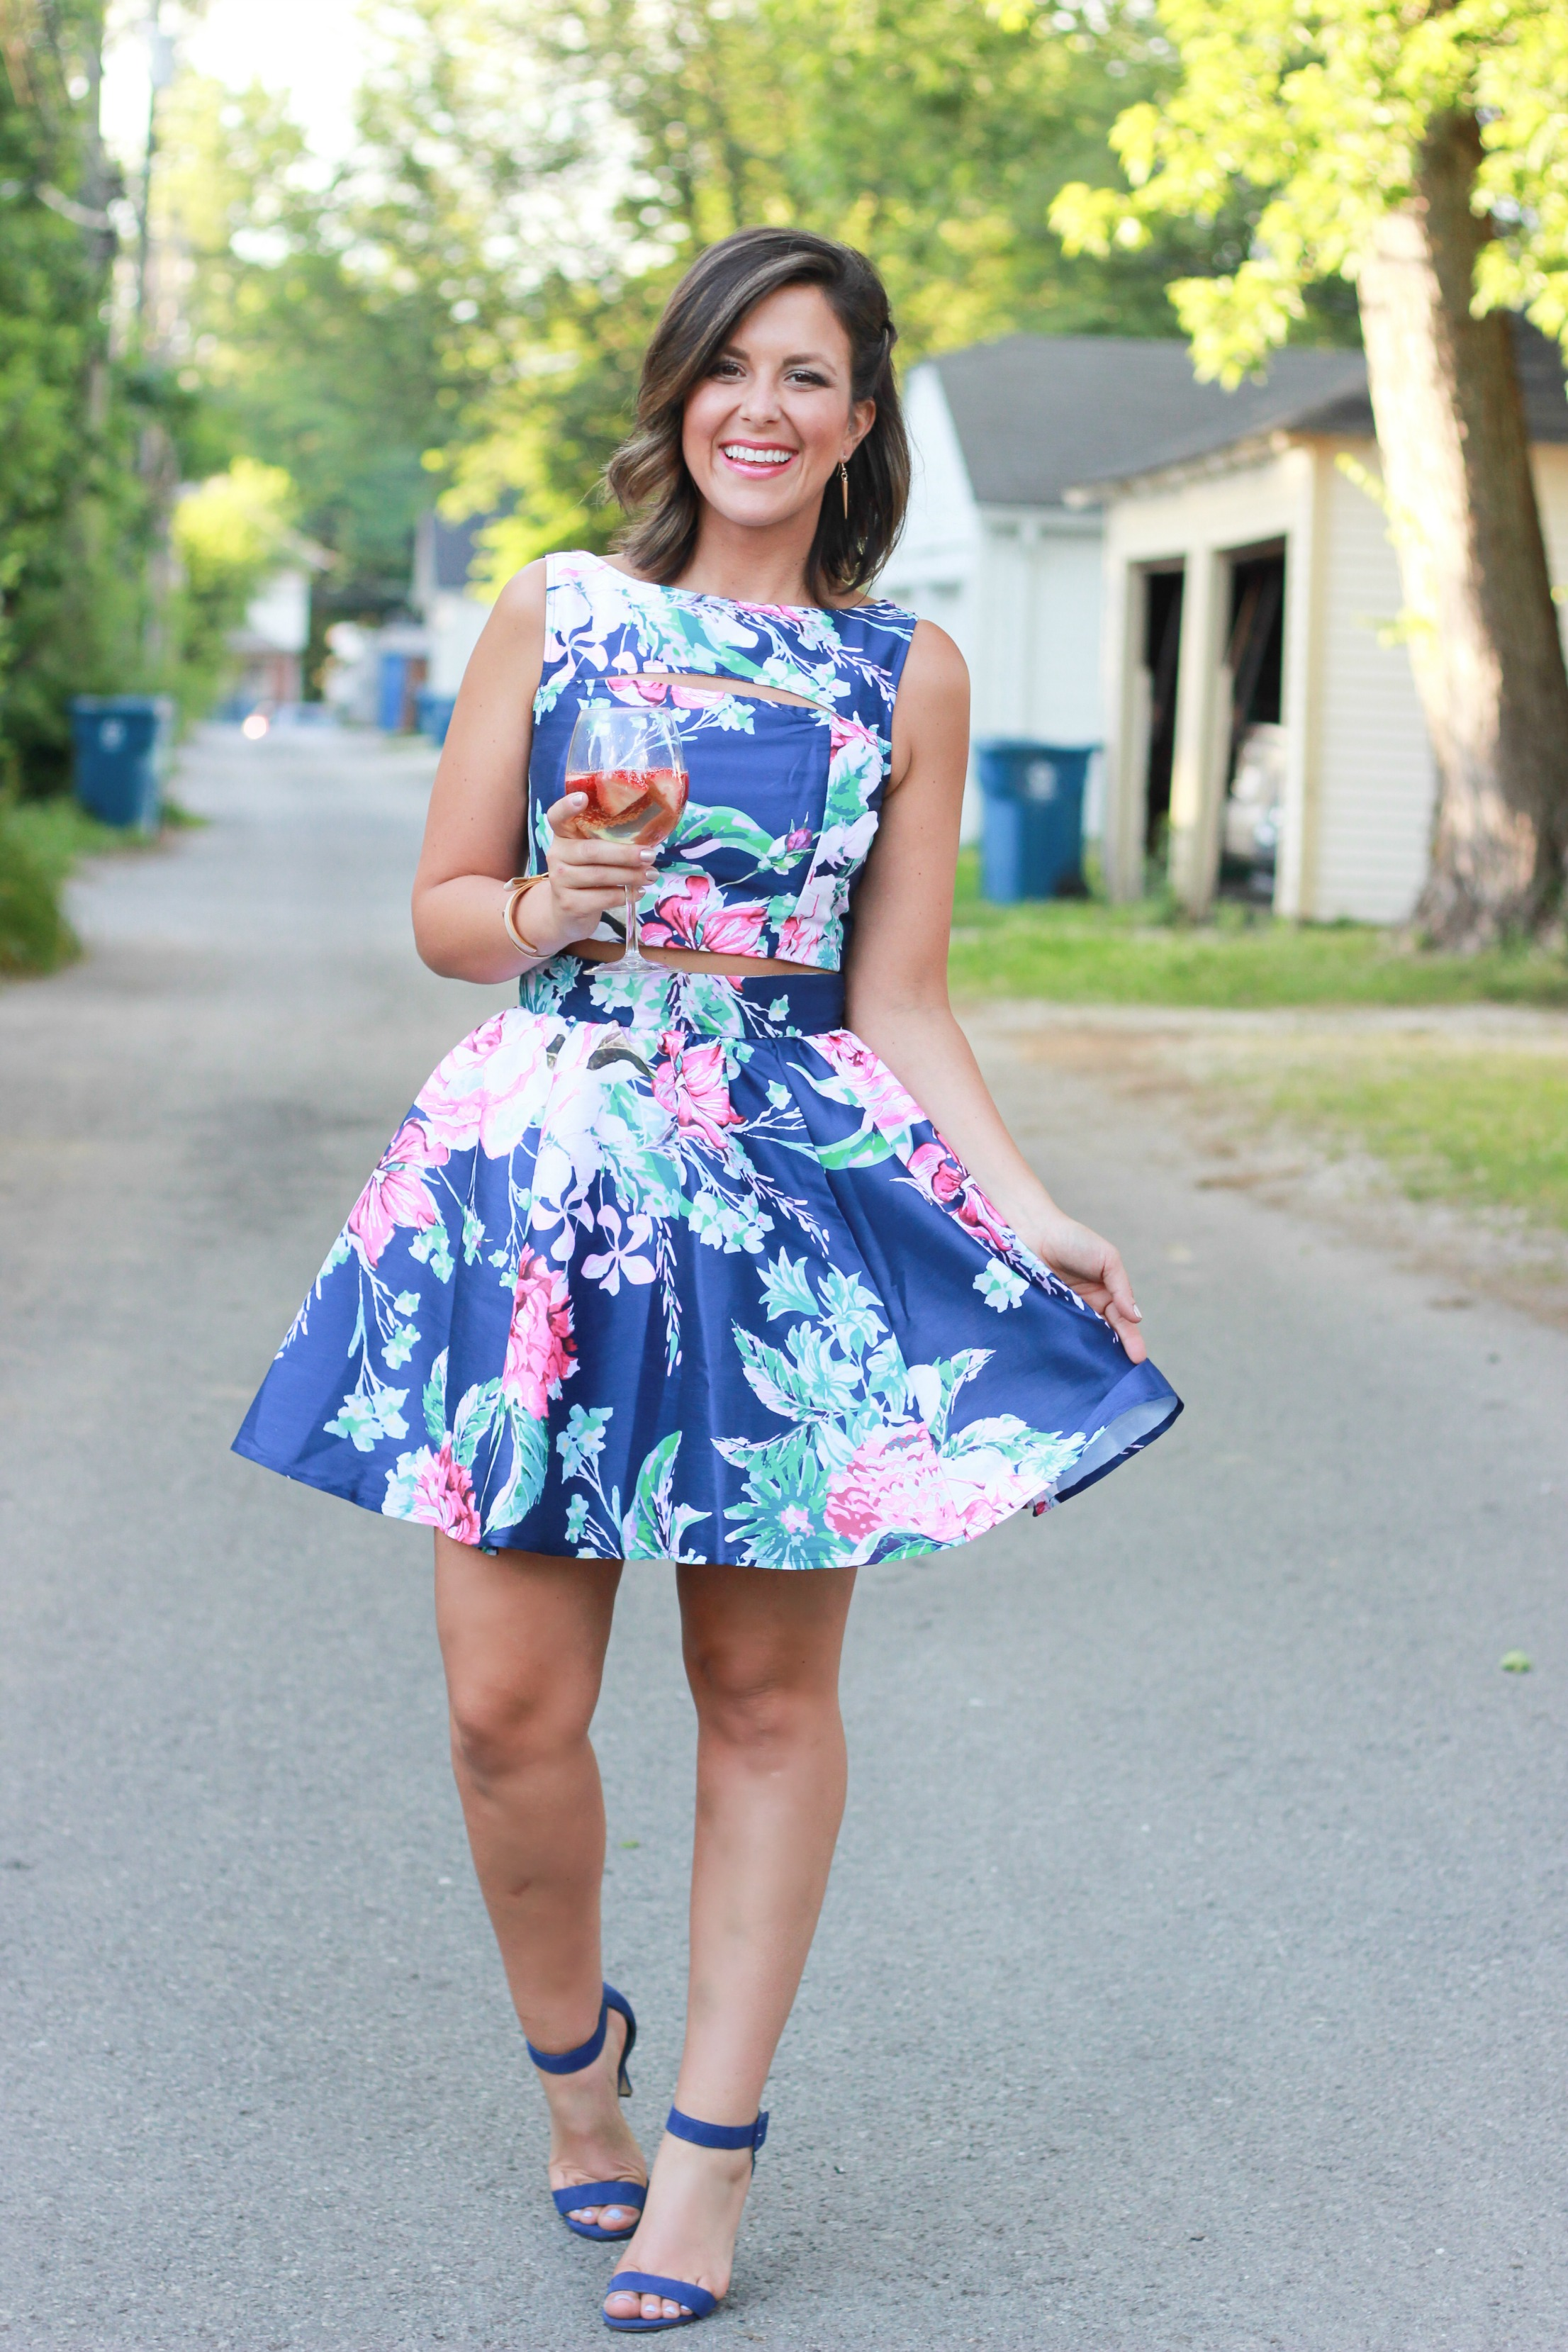 Charming Wedding Outfits For Ladies Images - Wedding Ideas ...